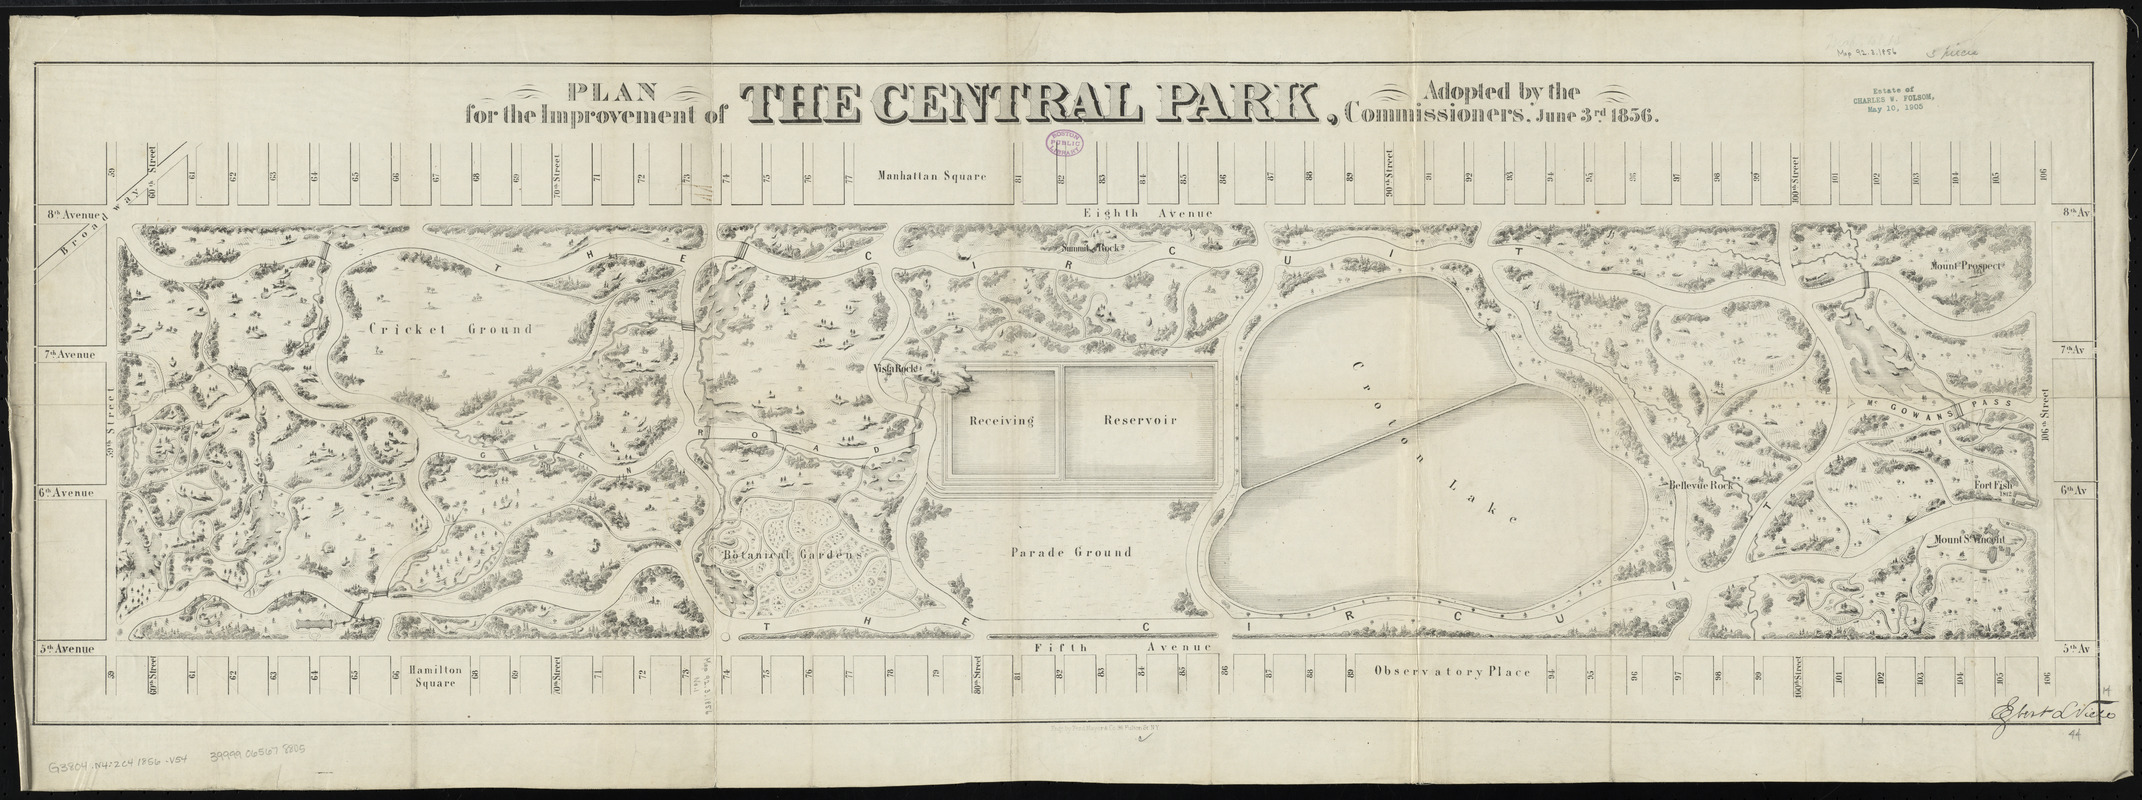 Plan for the improvement of the Central Park, adopted by the Commissioners, June 3rd, 1856